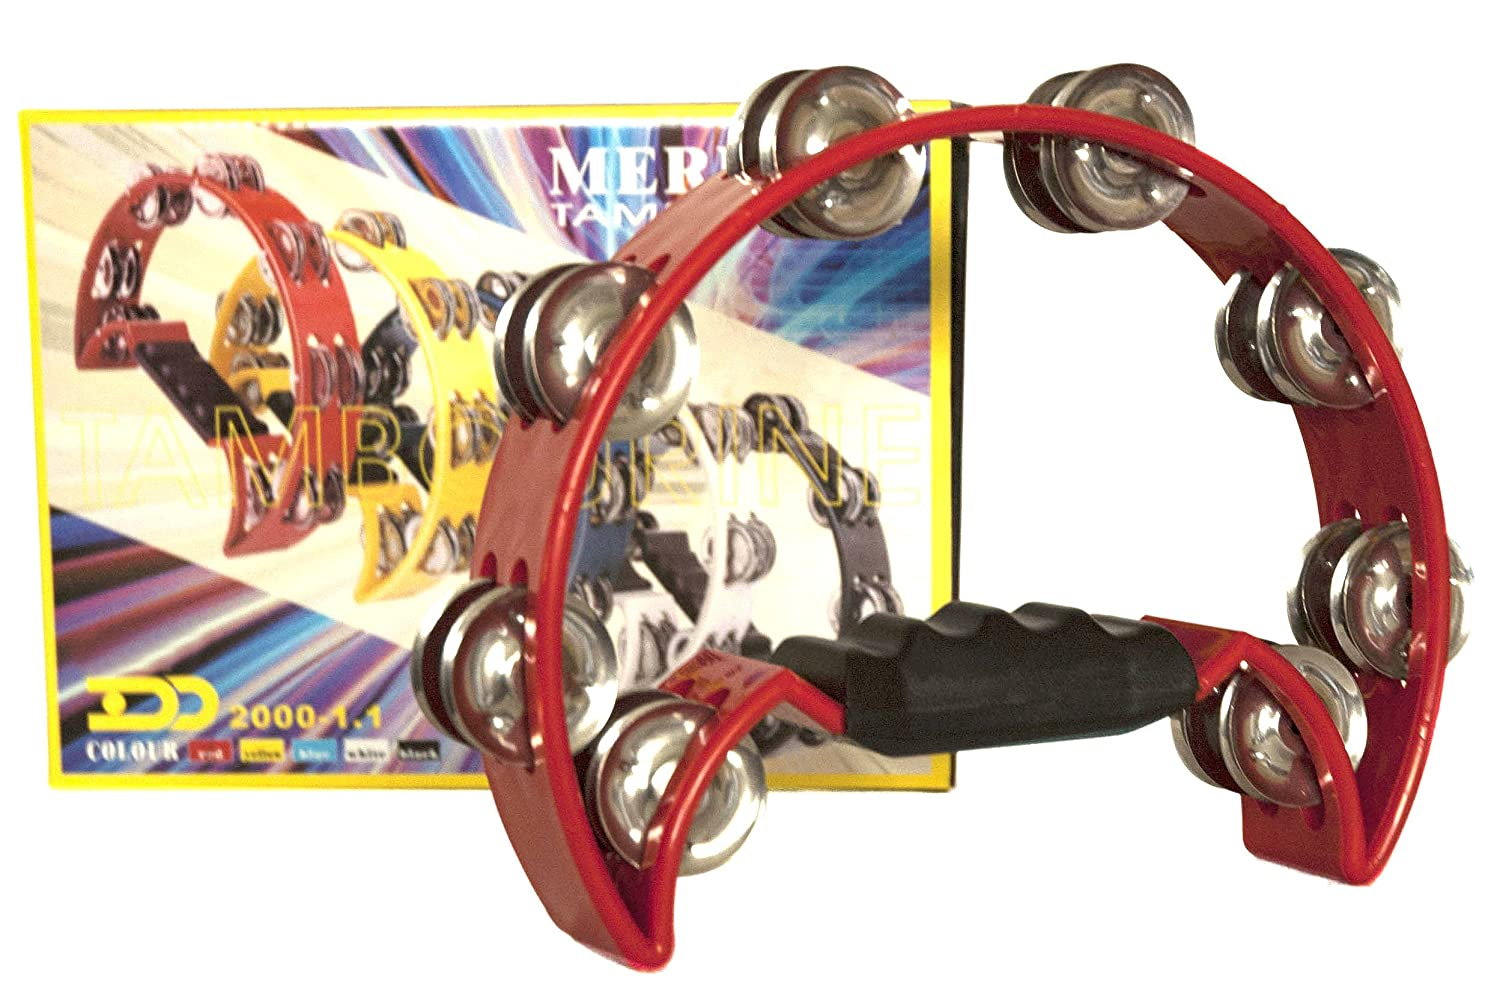 Pro Half Moon Tambourine - Double Row Cutaway 16 Sets of Jingles - Red Dealgrinder Co. DD-0978